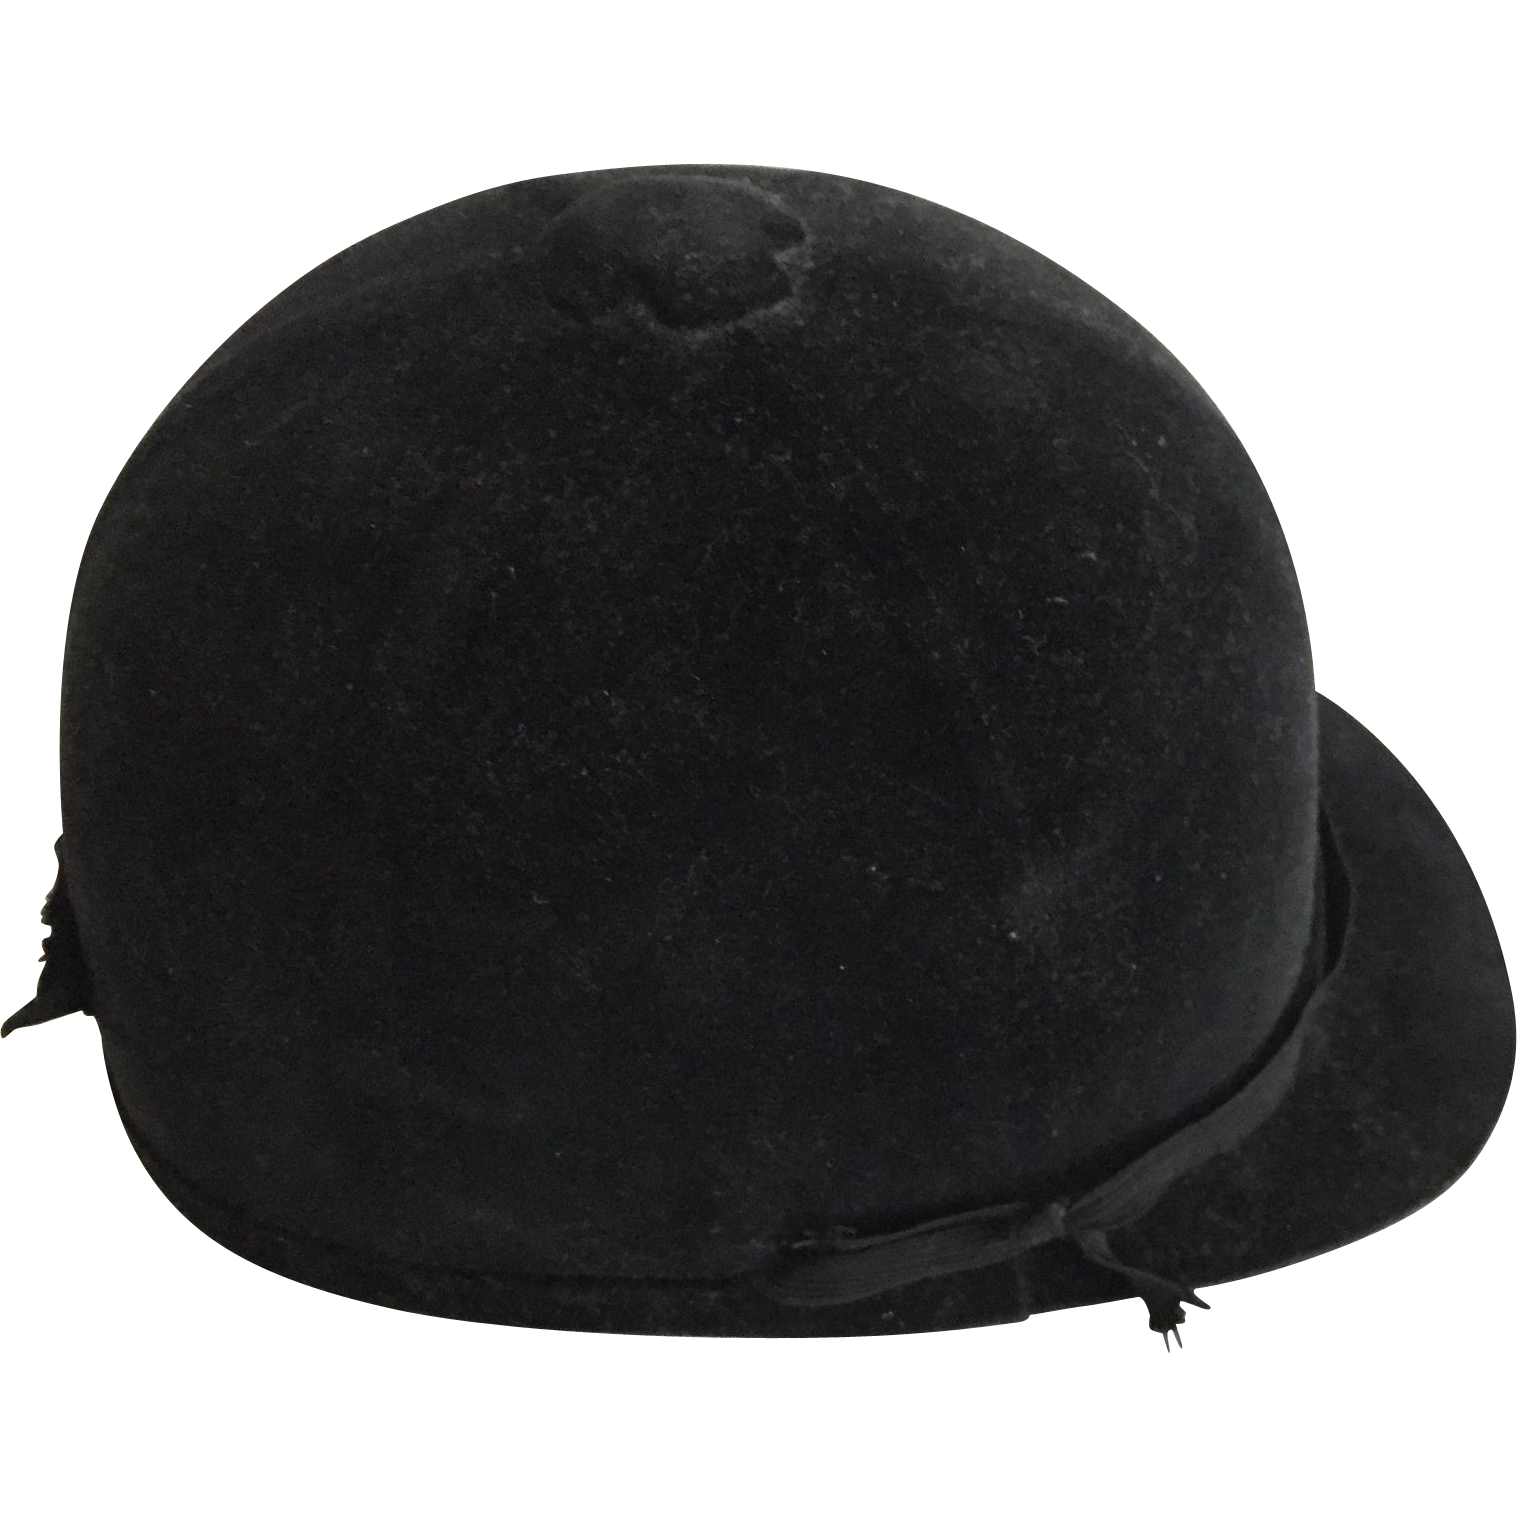 The Beaufort Hunt Cap and Brittany Full-Seat Breech Riding Apparel